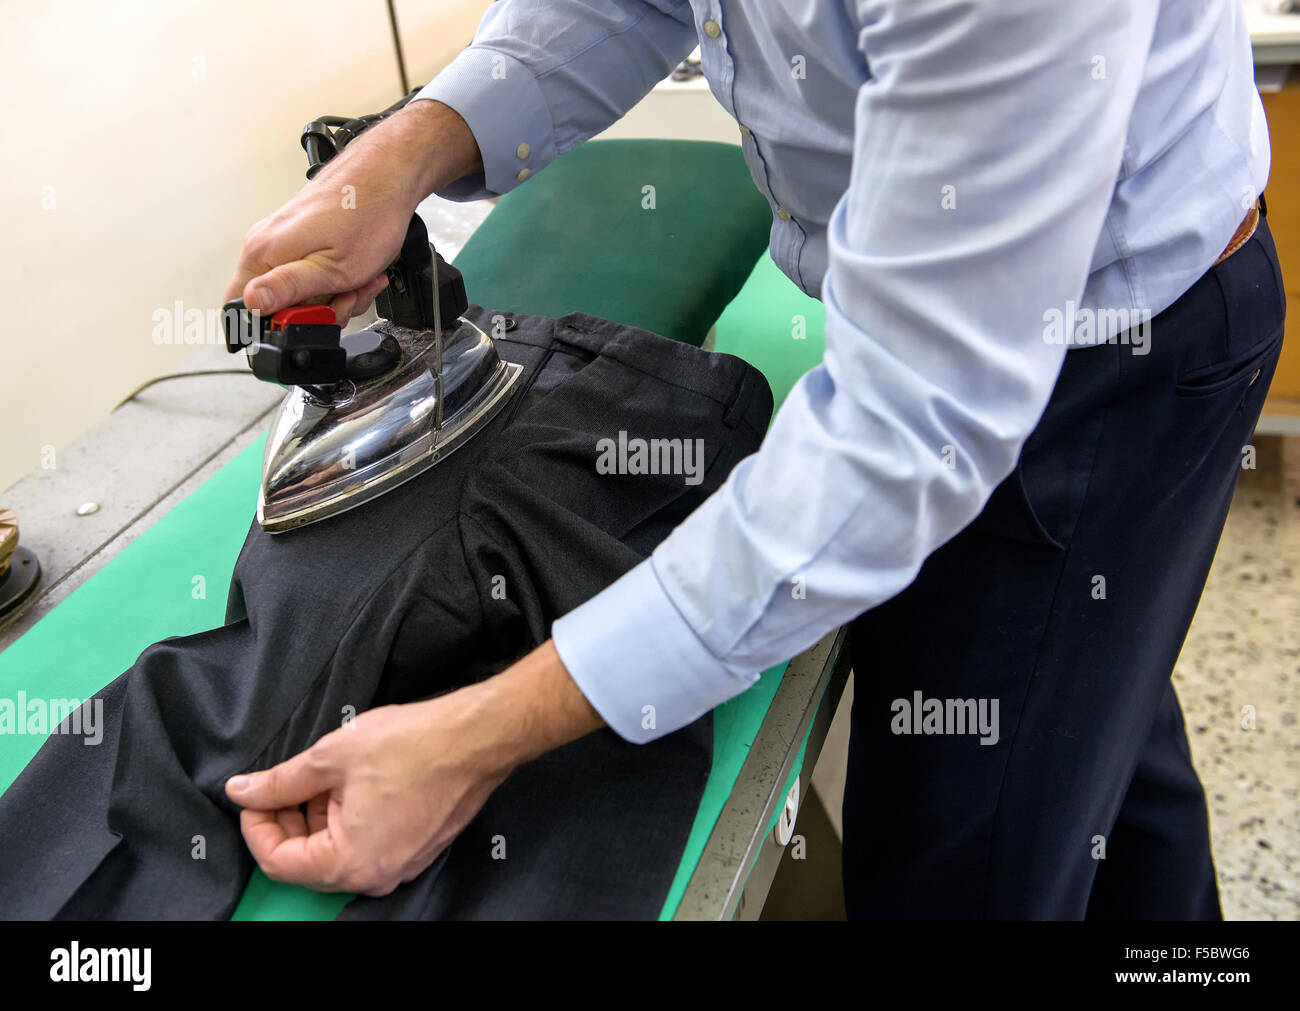 Tailor ironing black pants in a workshop - Stock Image